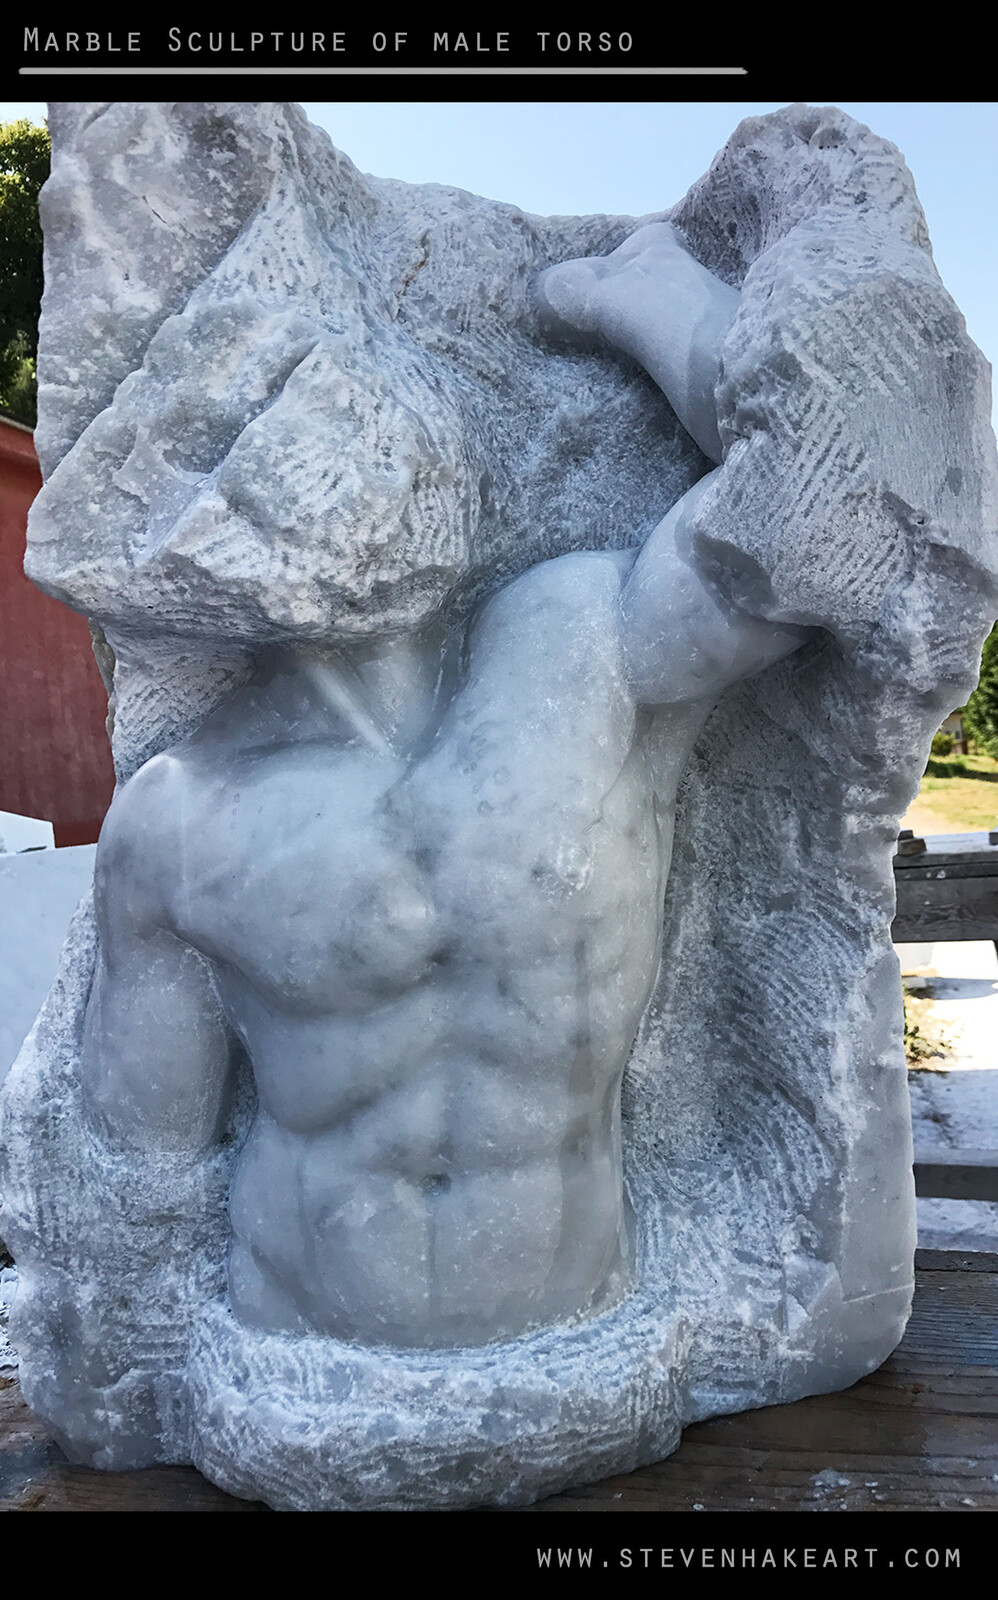 Marble Sculpture of Male Torso